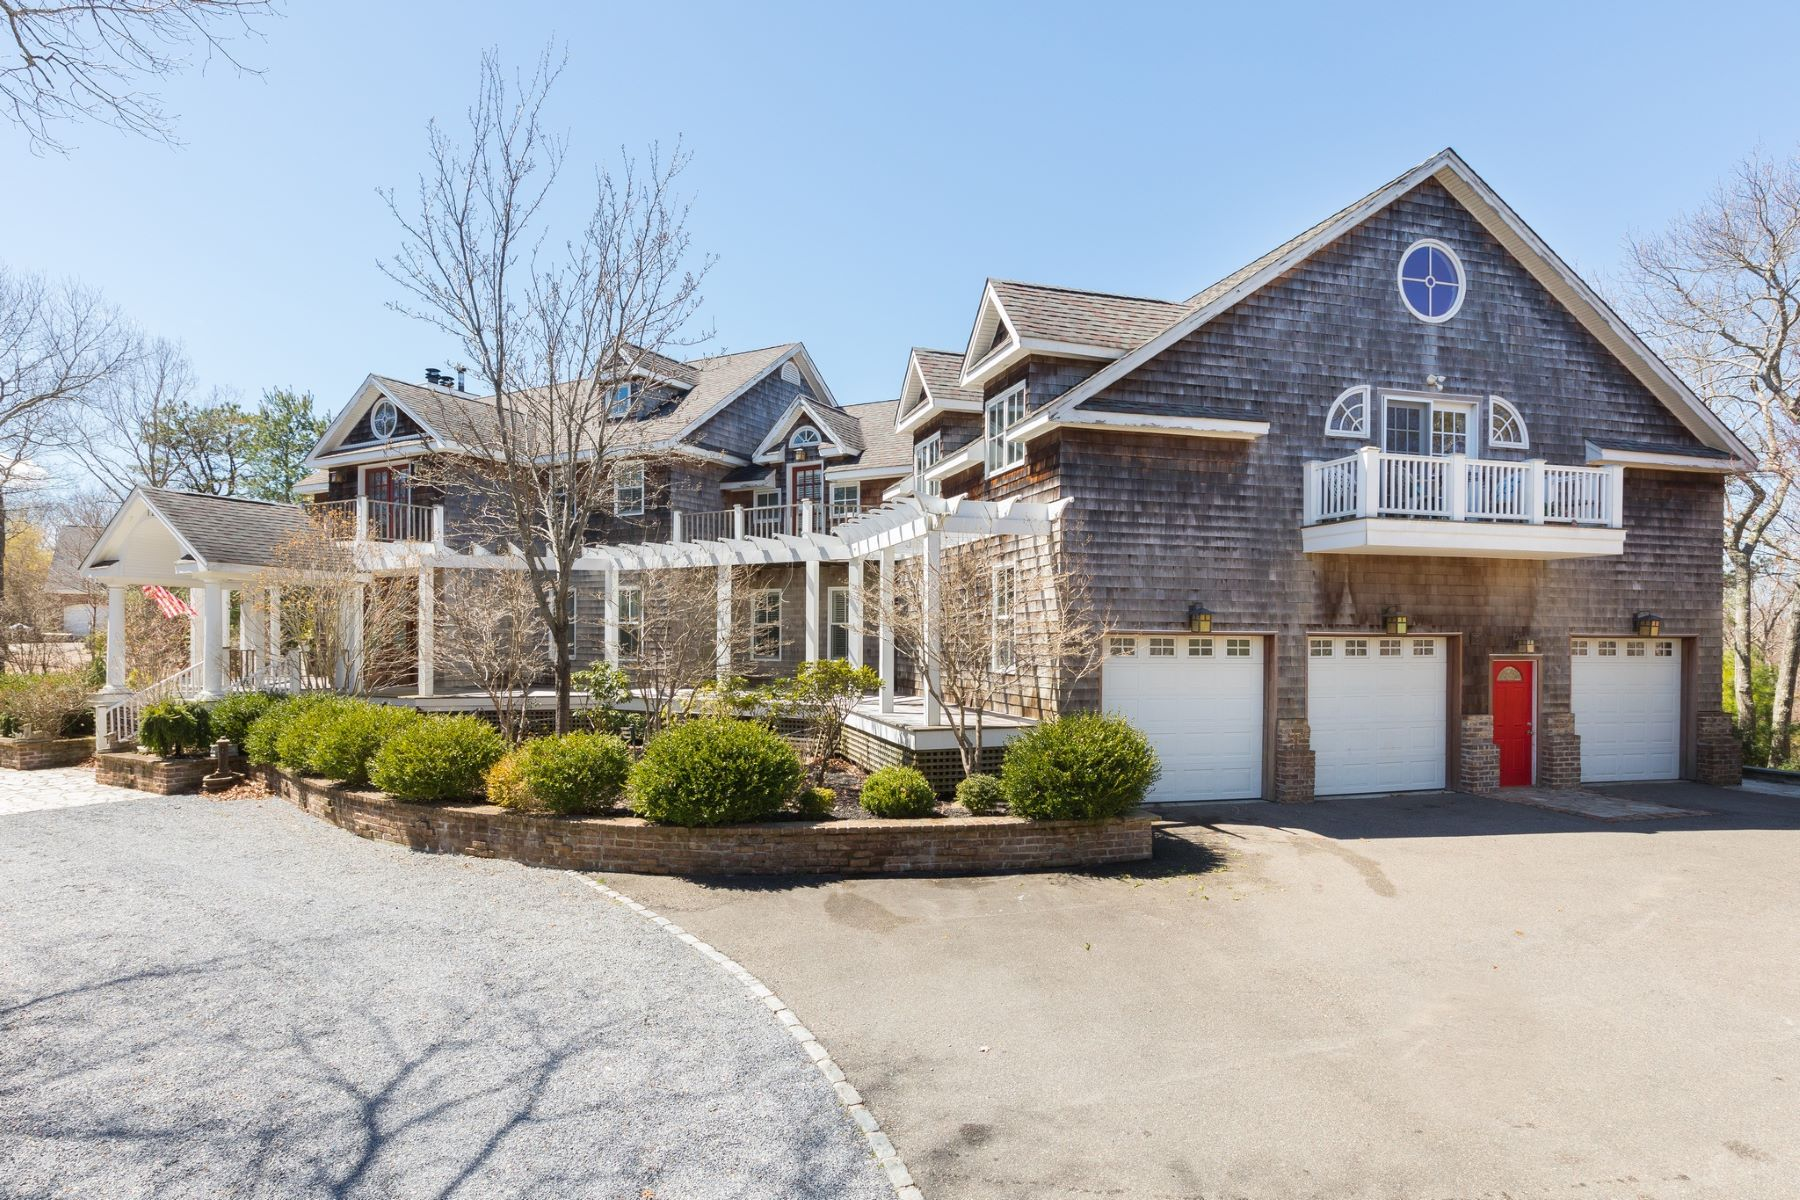 Single Family Home for Active at 12 Red Creek Cir , Hampton Bays, NY 11946 12 Red Creek Cir Hampton Bays, New York 11946 United States